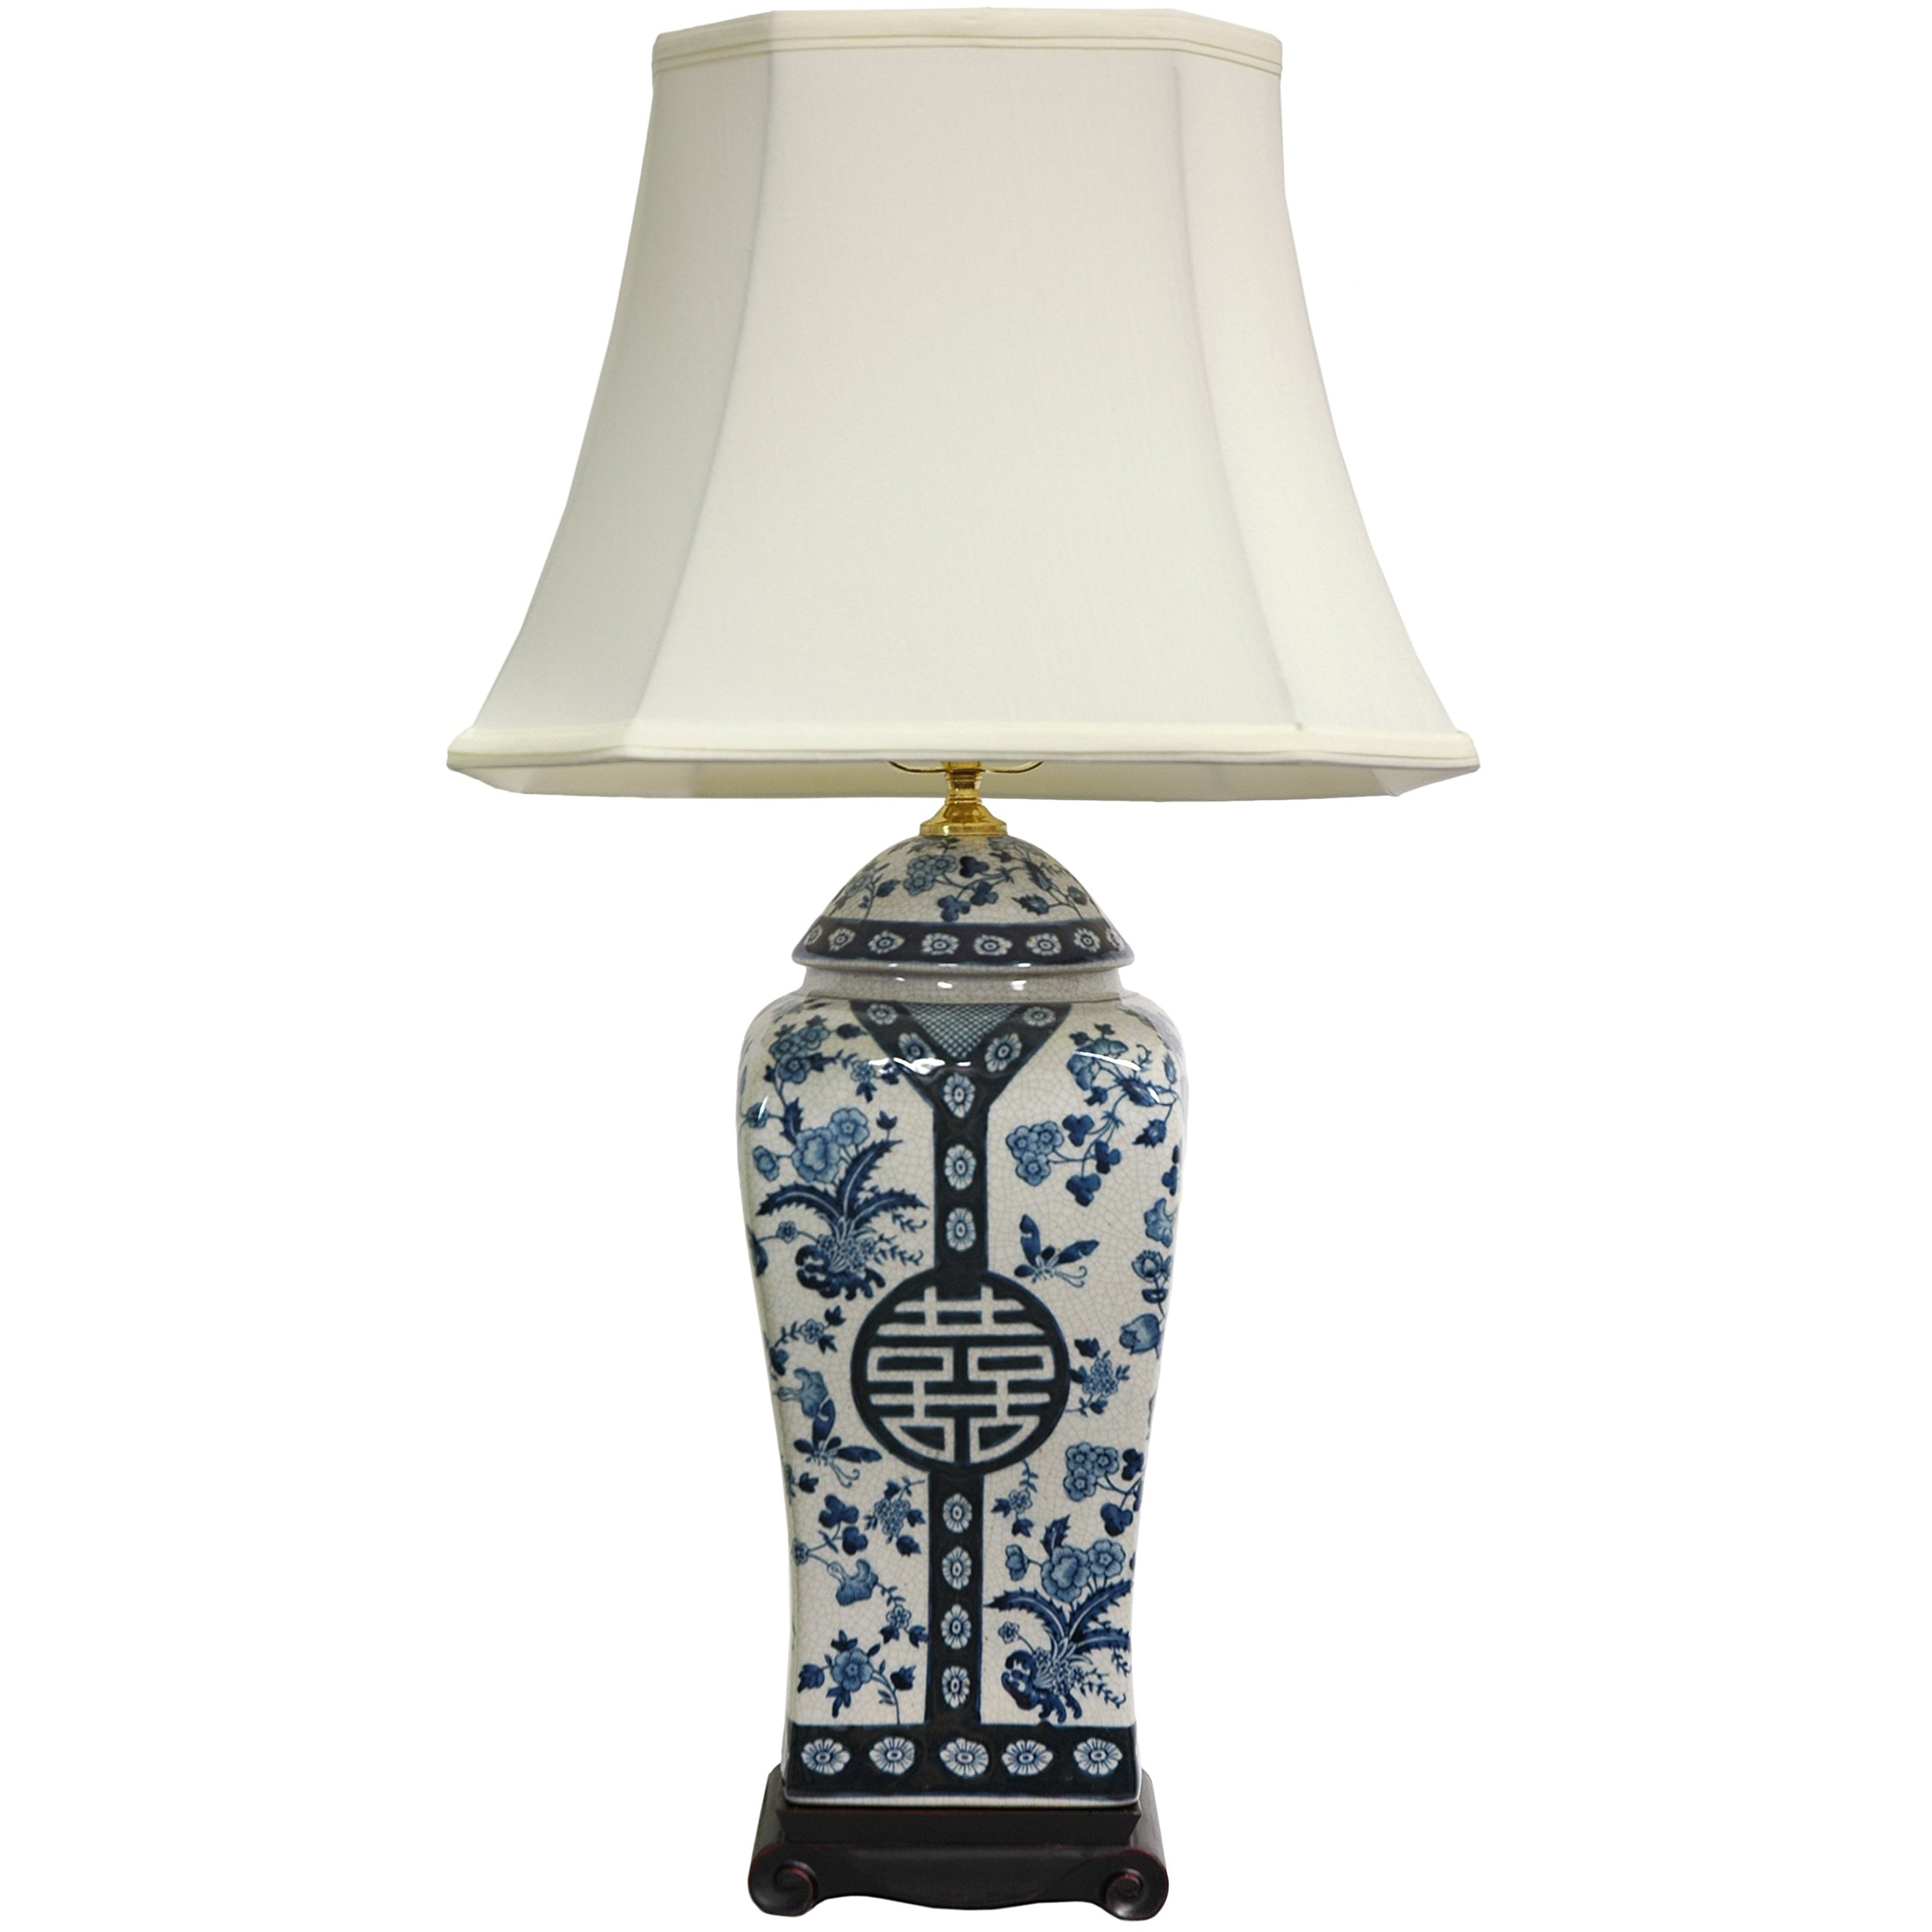 ORIENTAL FURNITURE 26'' Floral Blue & White Vase Lamp by ORIENTAL FURNITURE